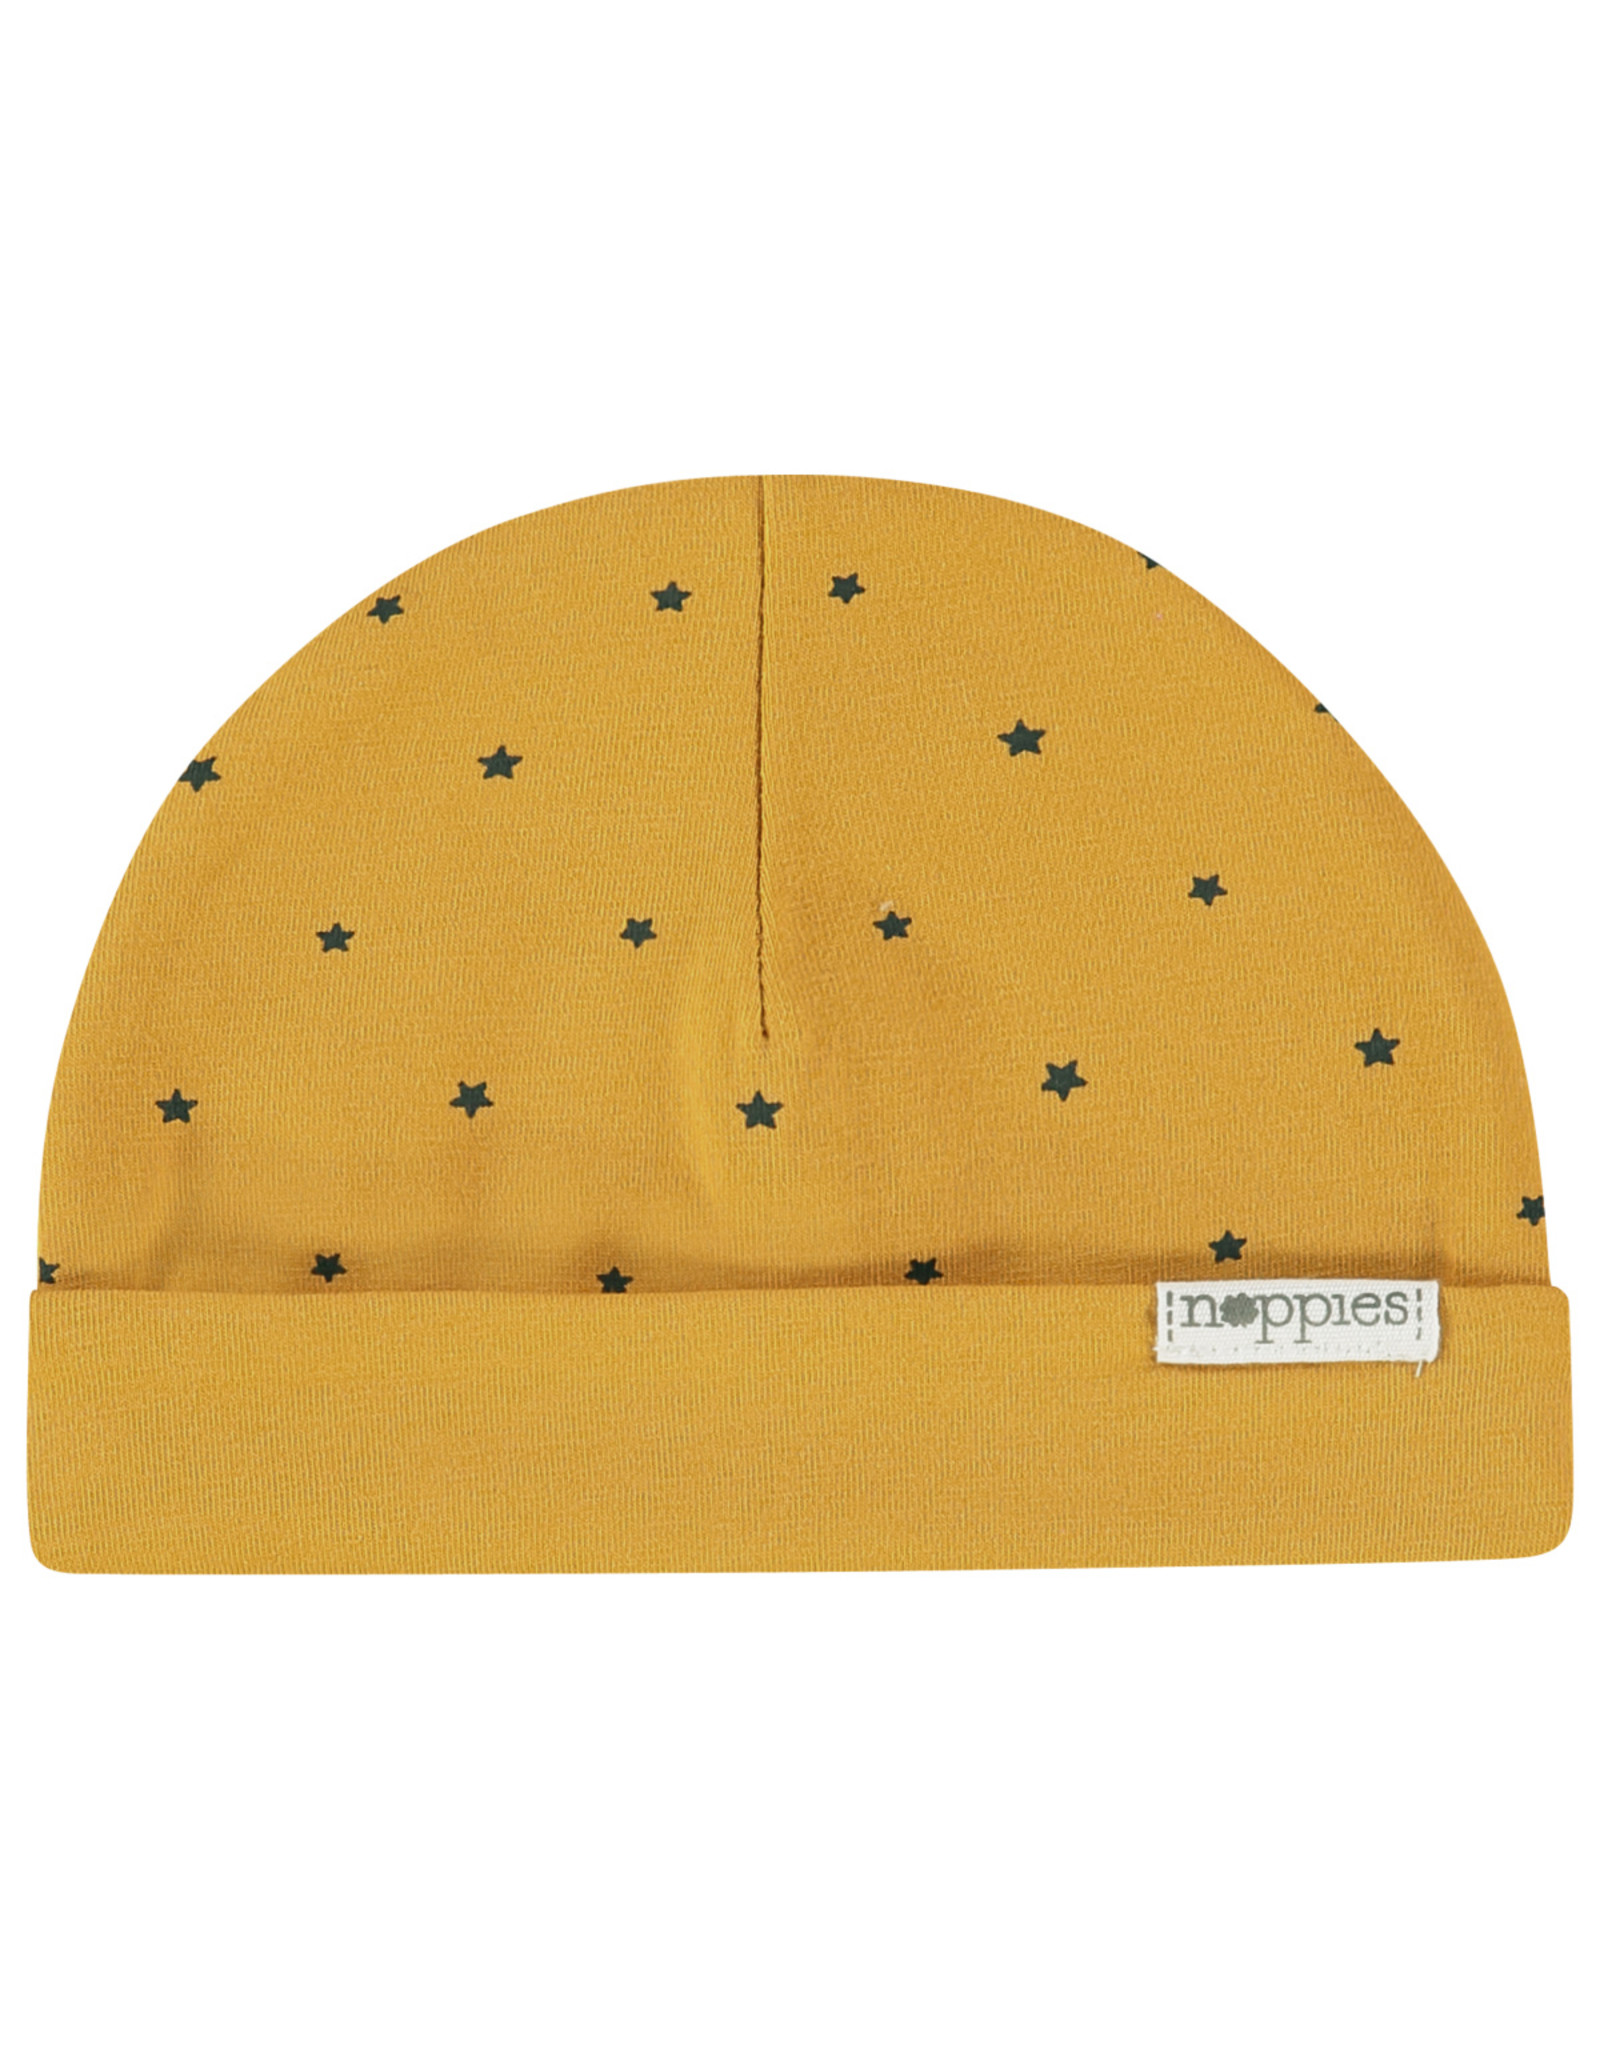 Noppies U Hat rev Marjolein aop honey yellow